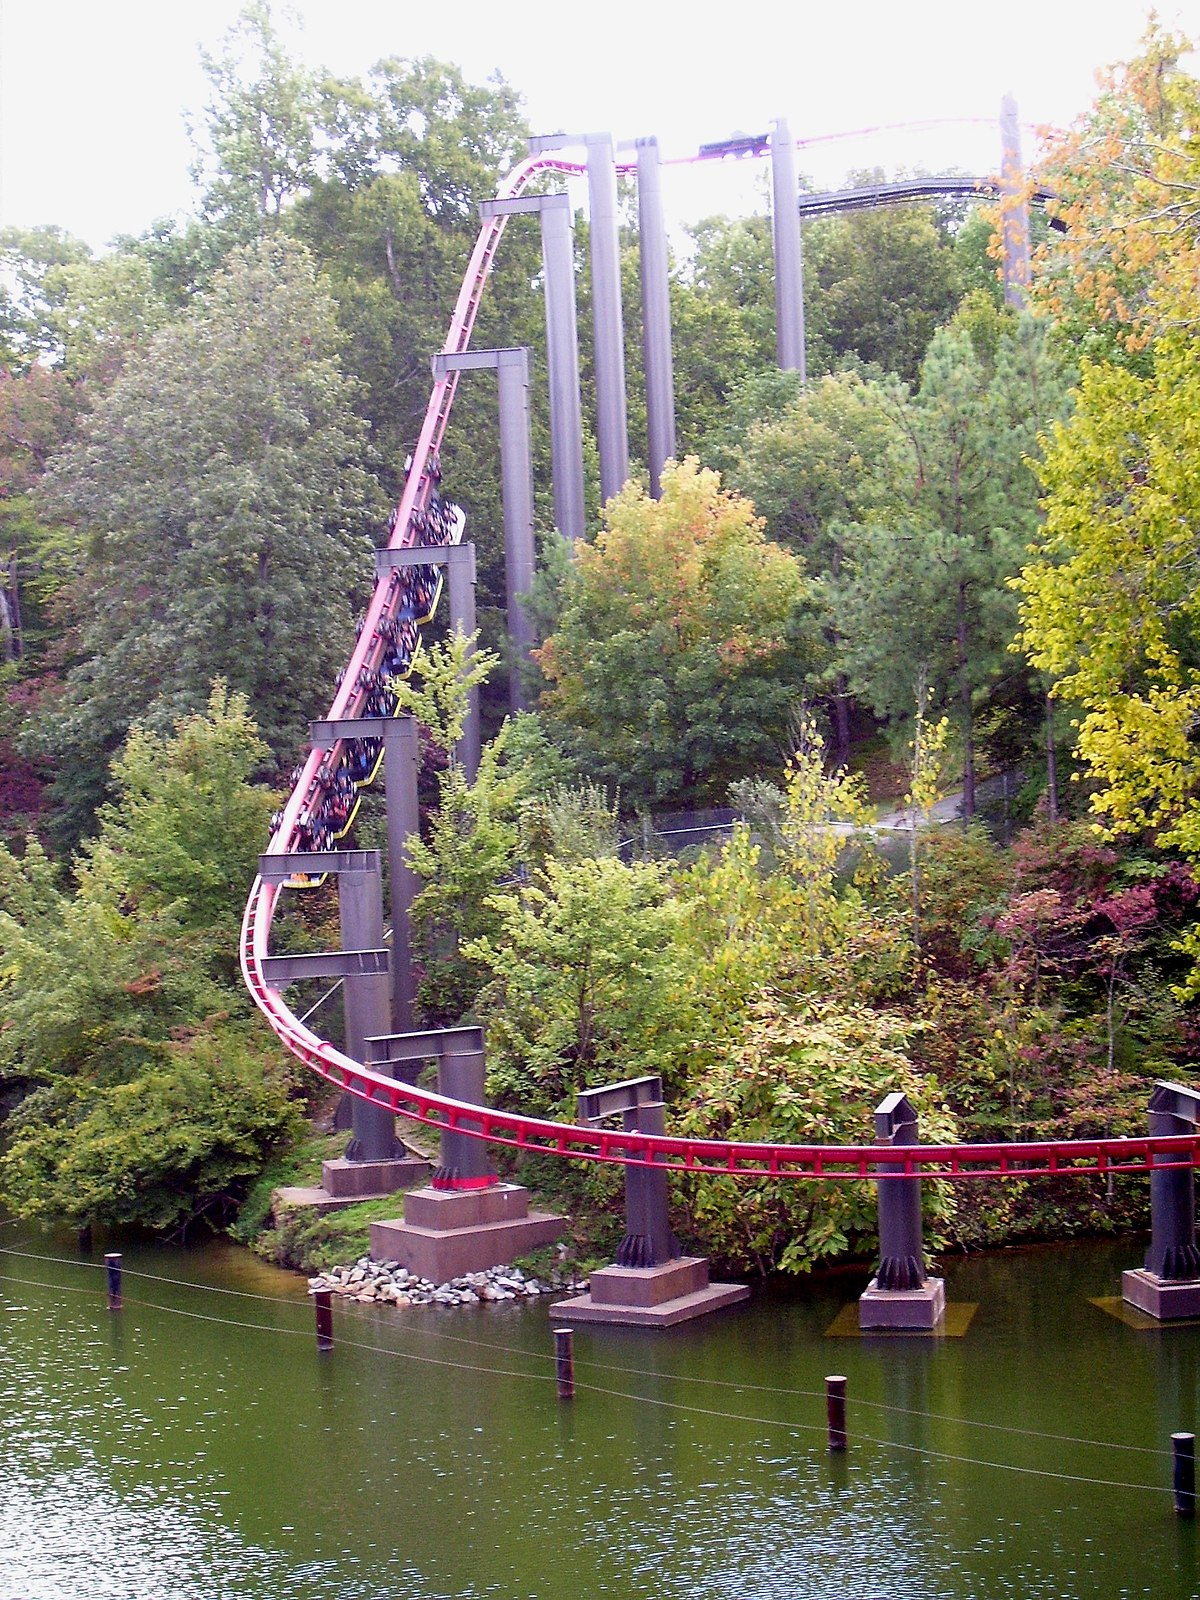 Big bad wolf roller coaster wikipedia - Busch gardens williamsburg rides ...